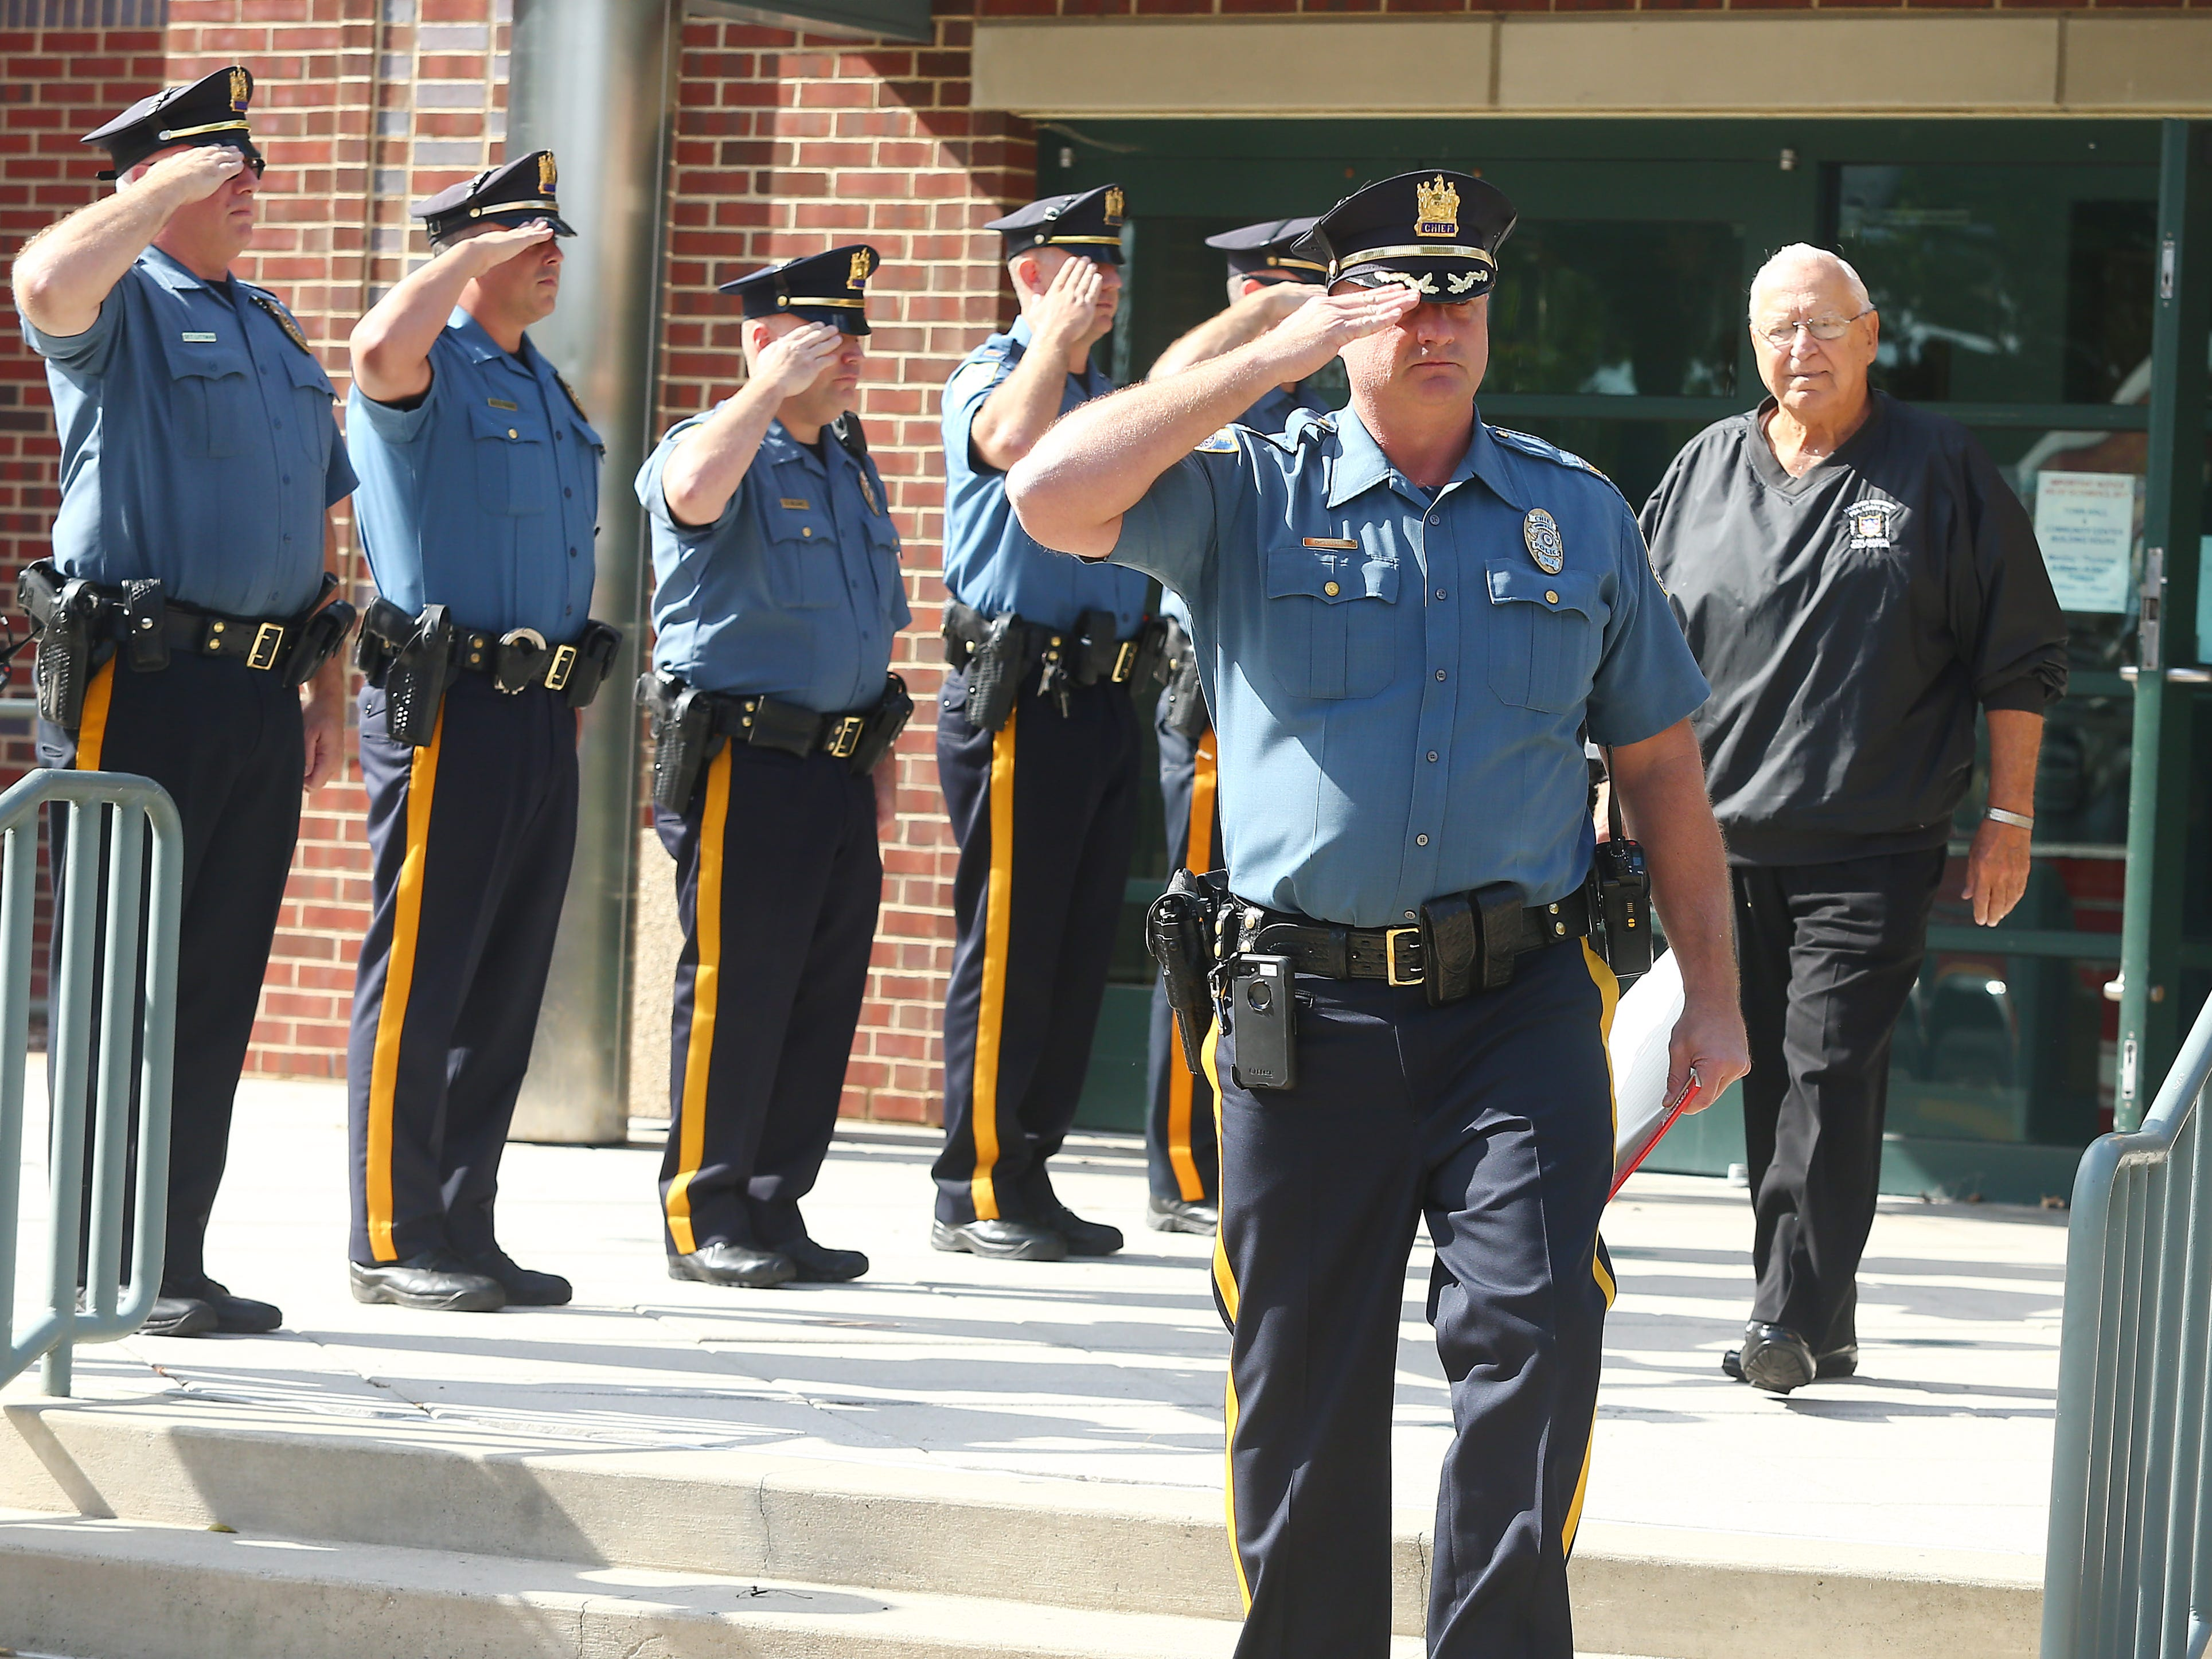 Police-style clapout for retirement of 60-year officer and crossing guard Steve Bolcar at the Hanover Municipal Building. October 3, 2018, Hanover, NJ